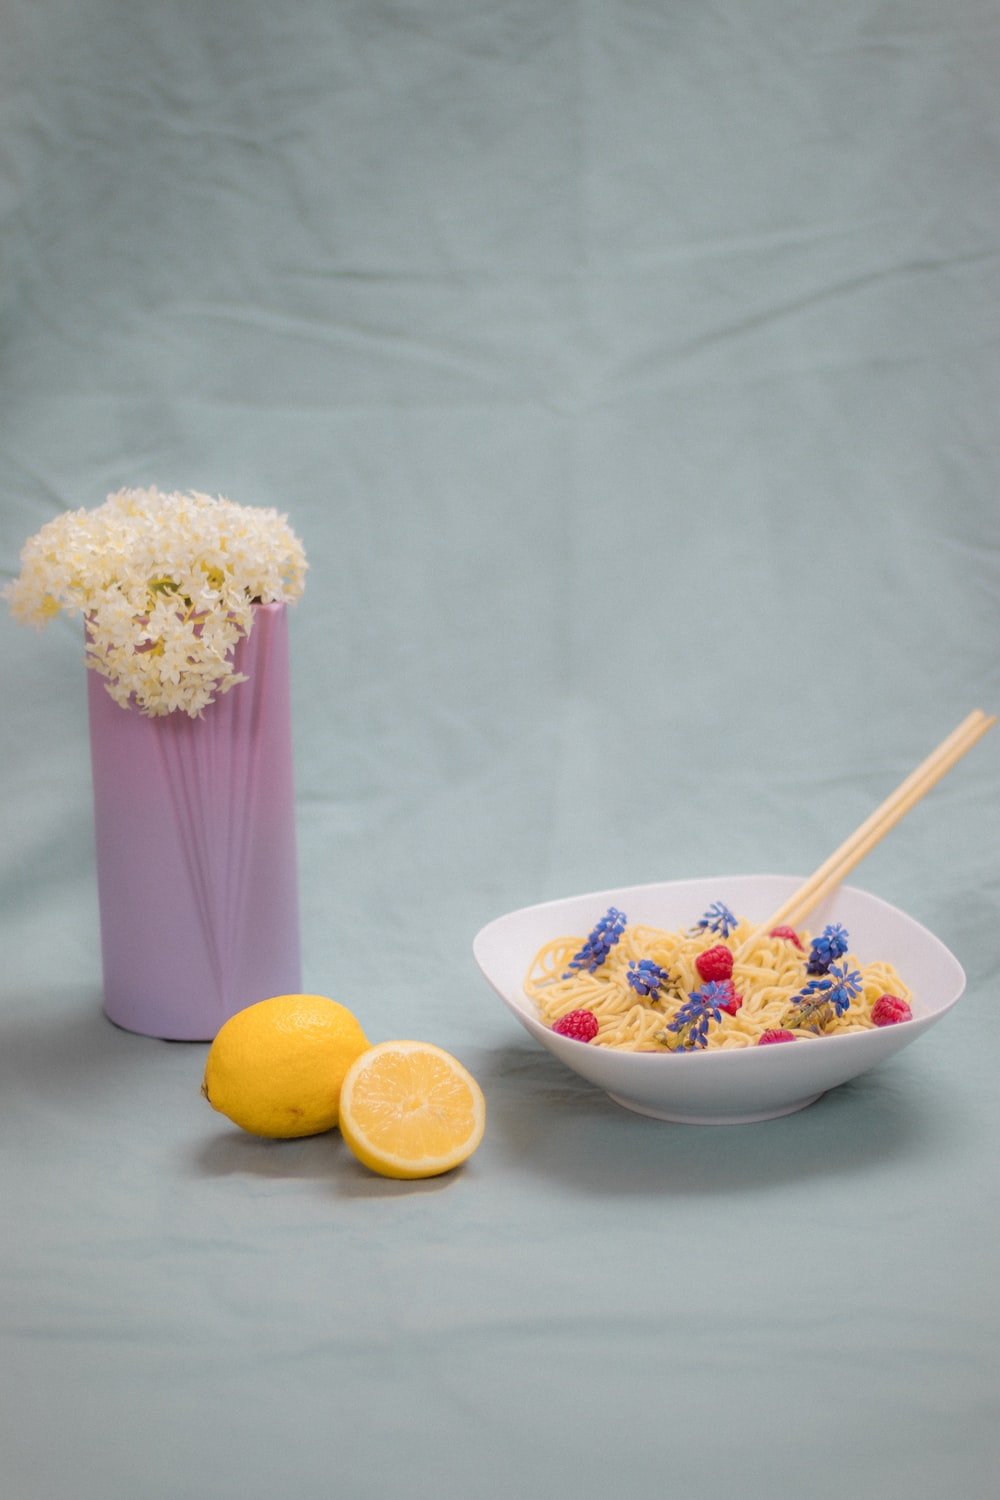 white and purple floral ceramic vase with yellow lemon and purple and white flower